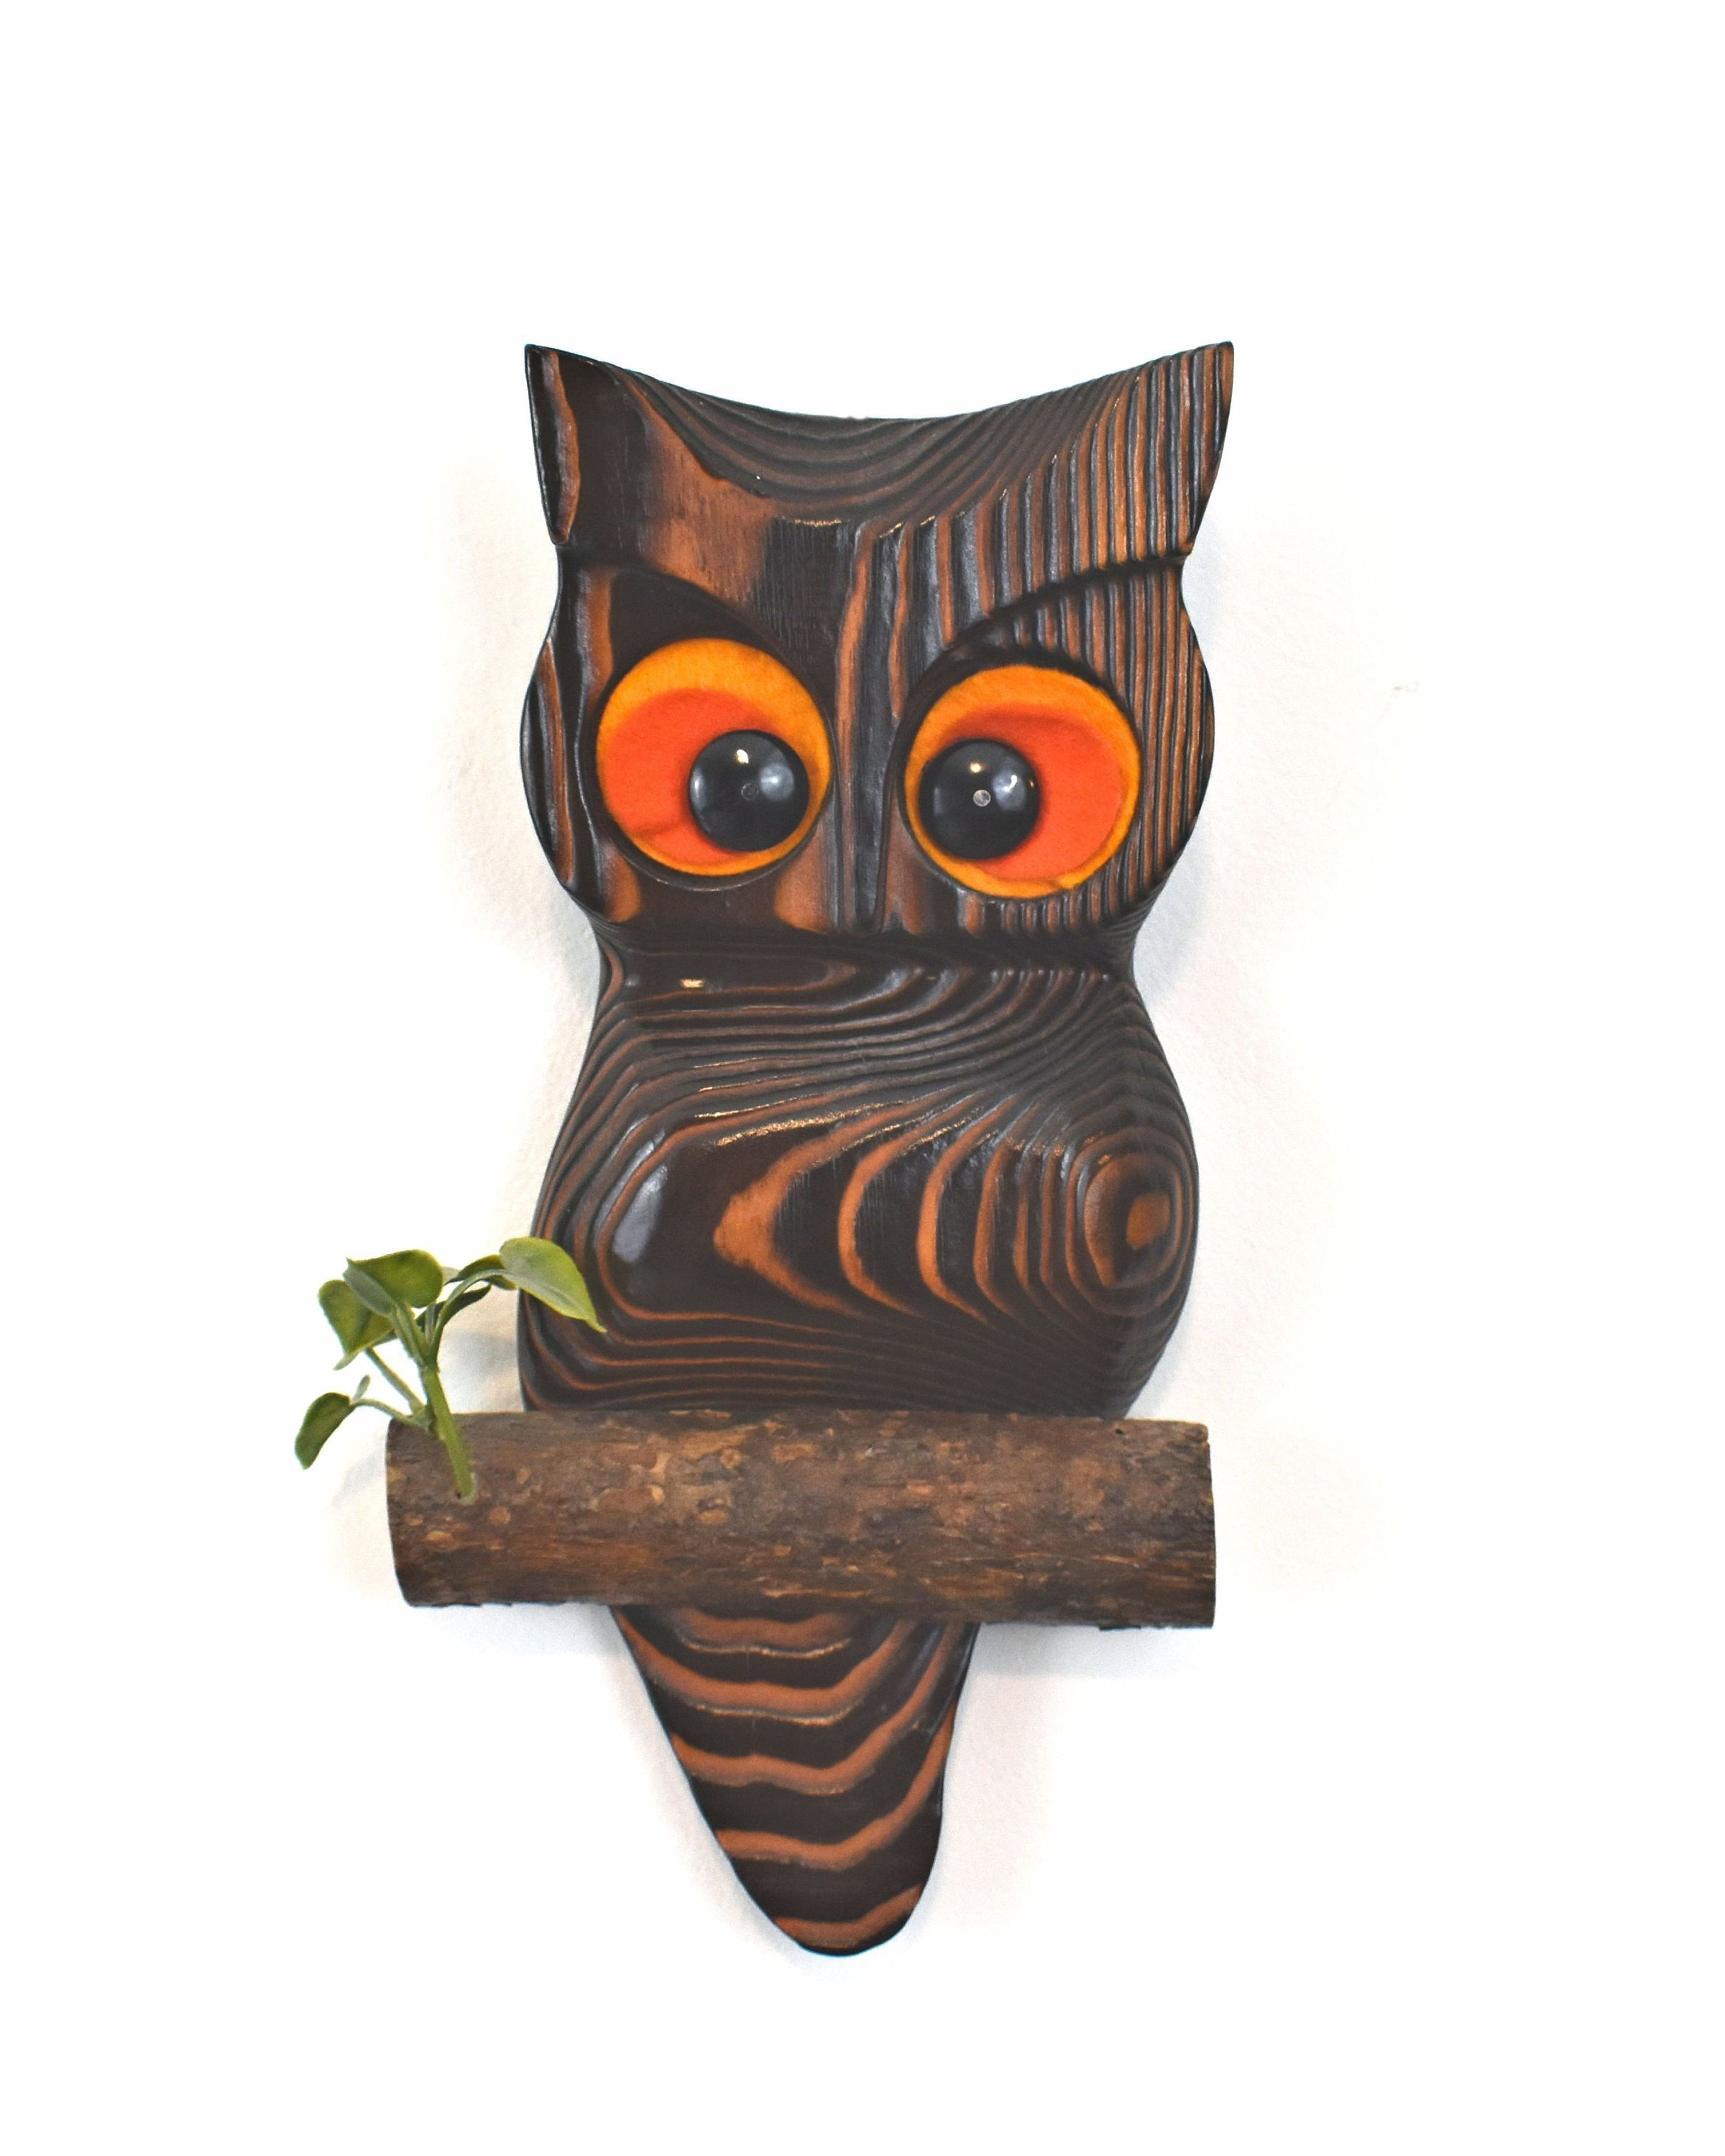 Vintage Wood Owl Wall Hanging Cryptomeria Wood Retro Owl Etsy Owl Wall Hanging Wooden Wall Design Wooden Owl